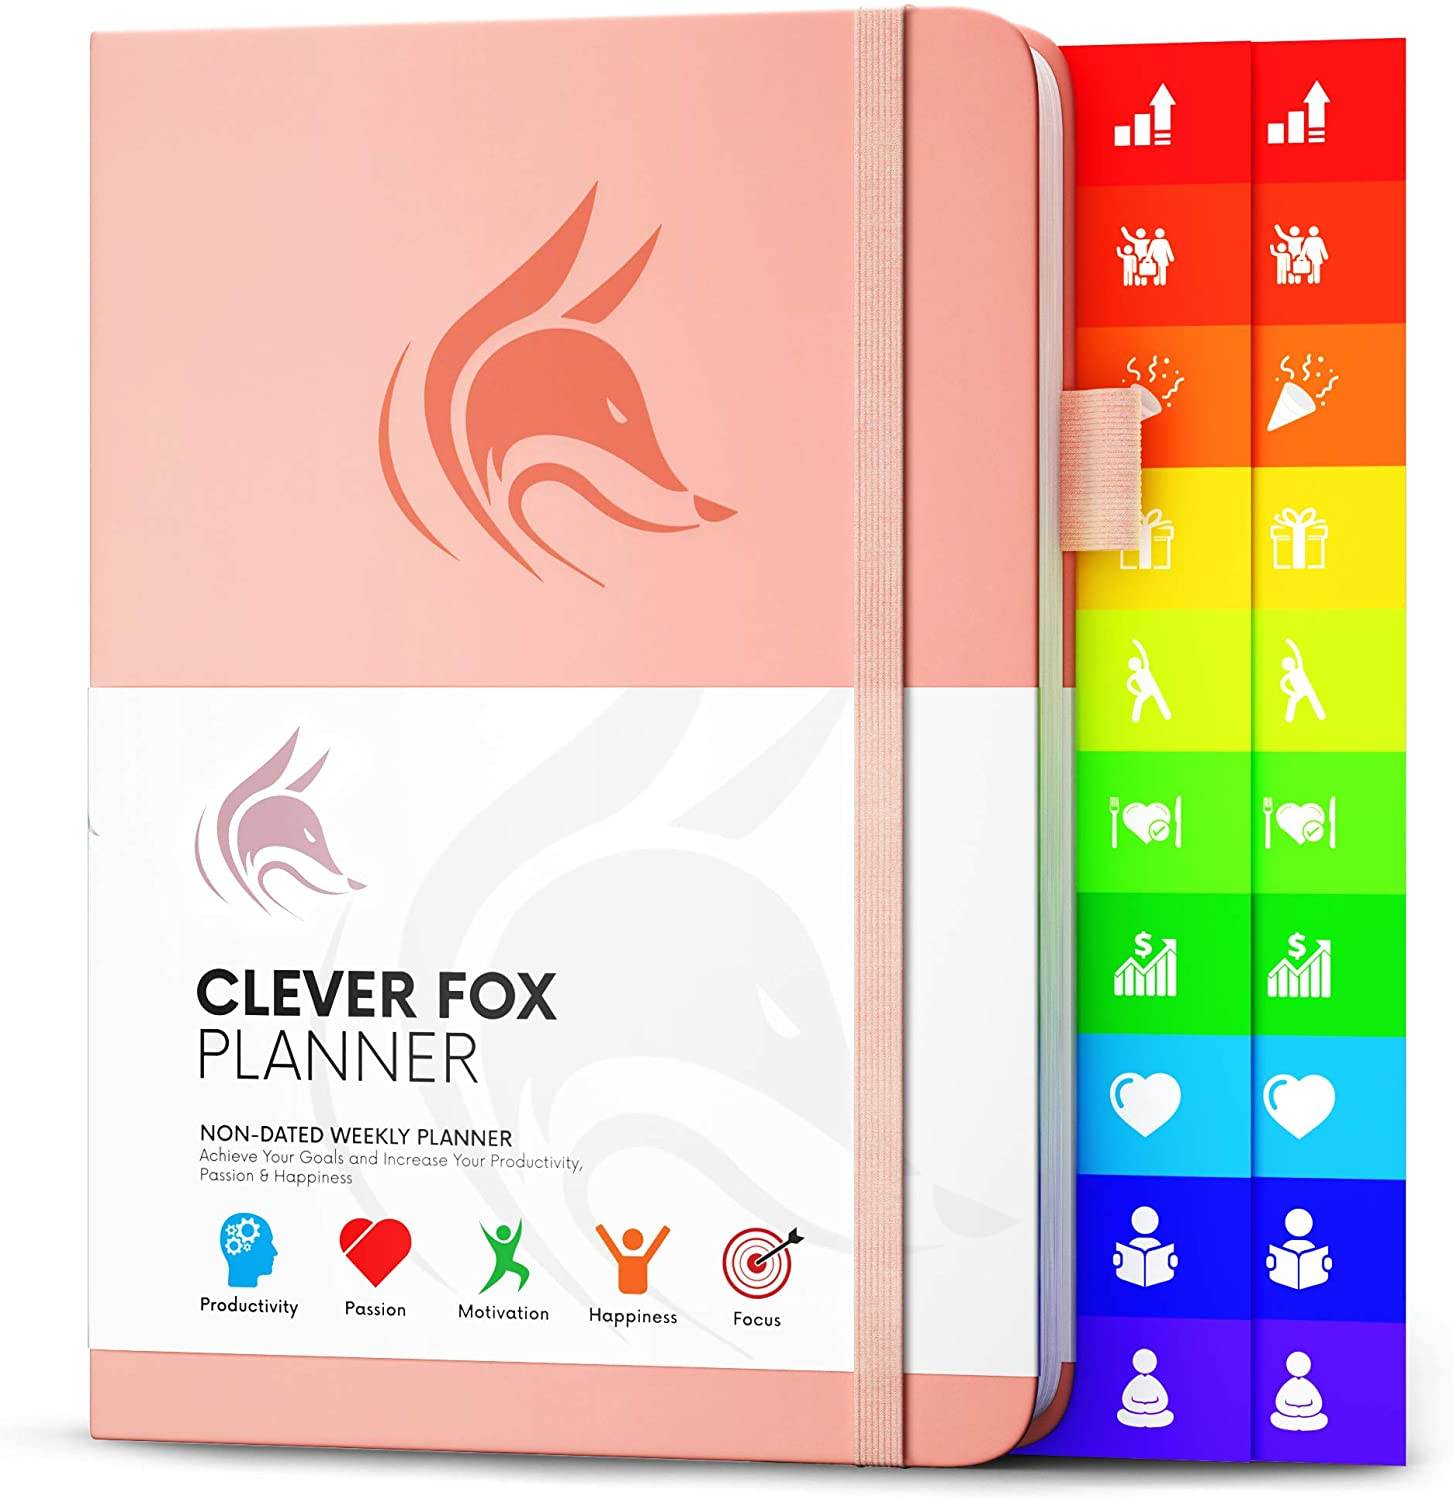 Clever Fox Planner - Weekly & Monthly Planner to Increase Productivity, Time Management and Hit Your Goals - Organizer, Gratitude Journal - Undated, Start Anytime, A5, Lasts 1 Year, Peach Pink(Weekly)